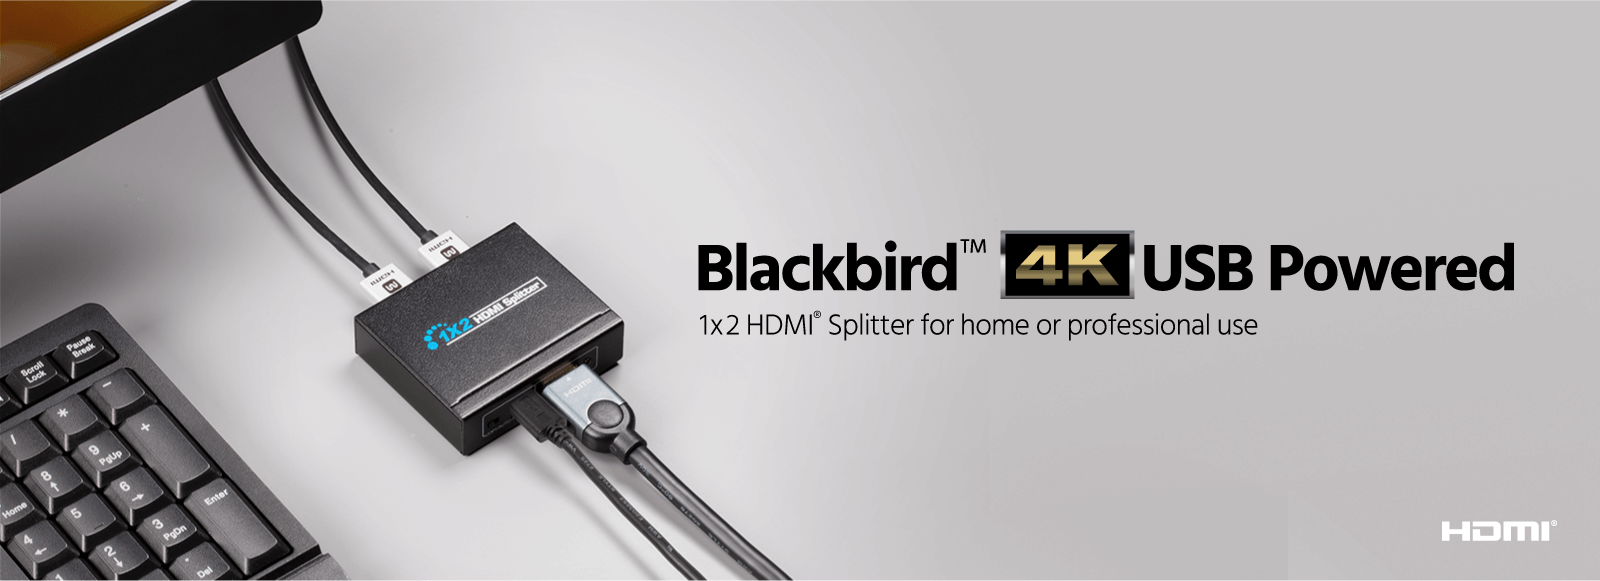 Blackbird 4K USB-Powered 1x2 HDMI Splitter